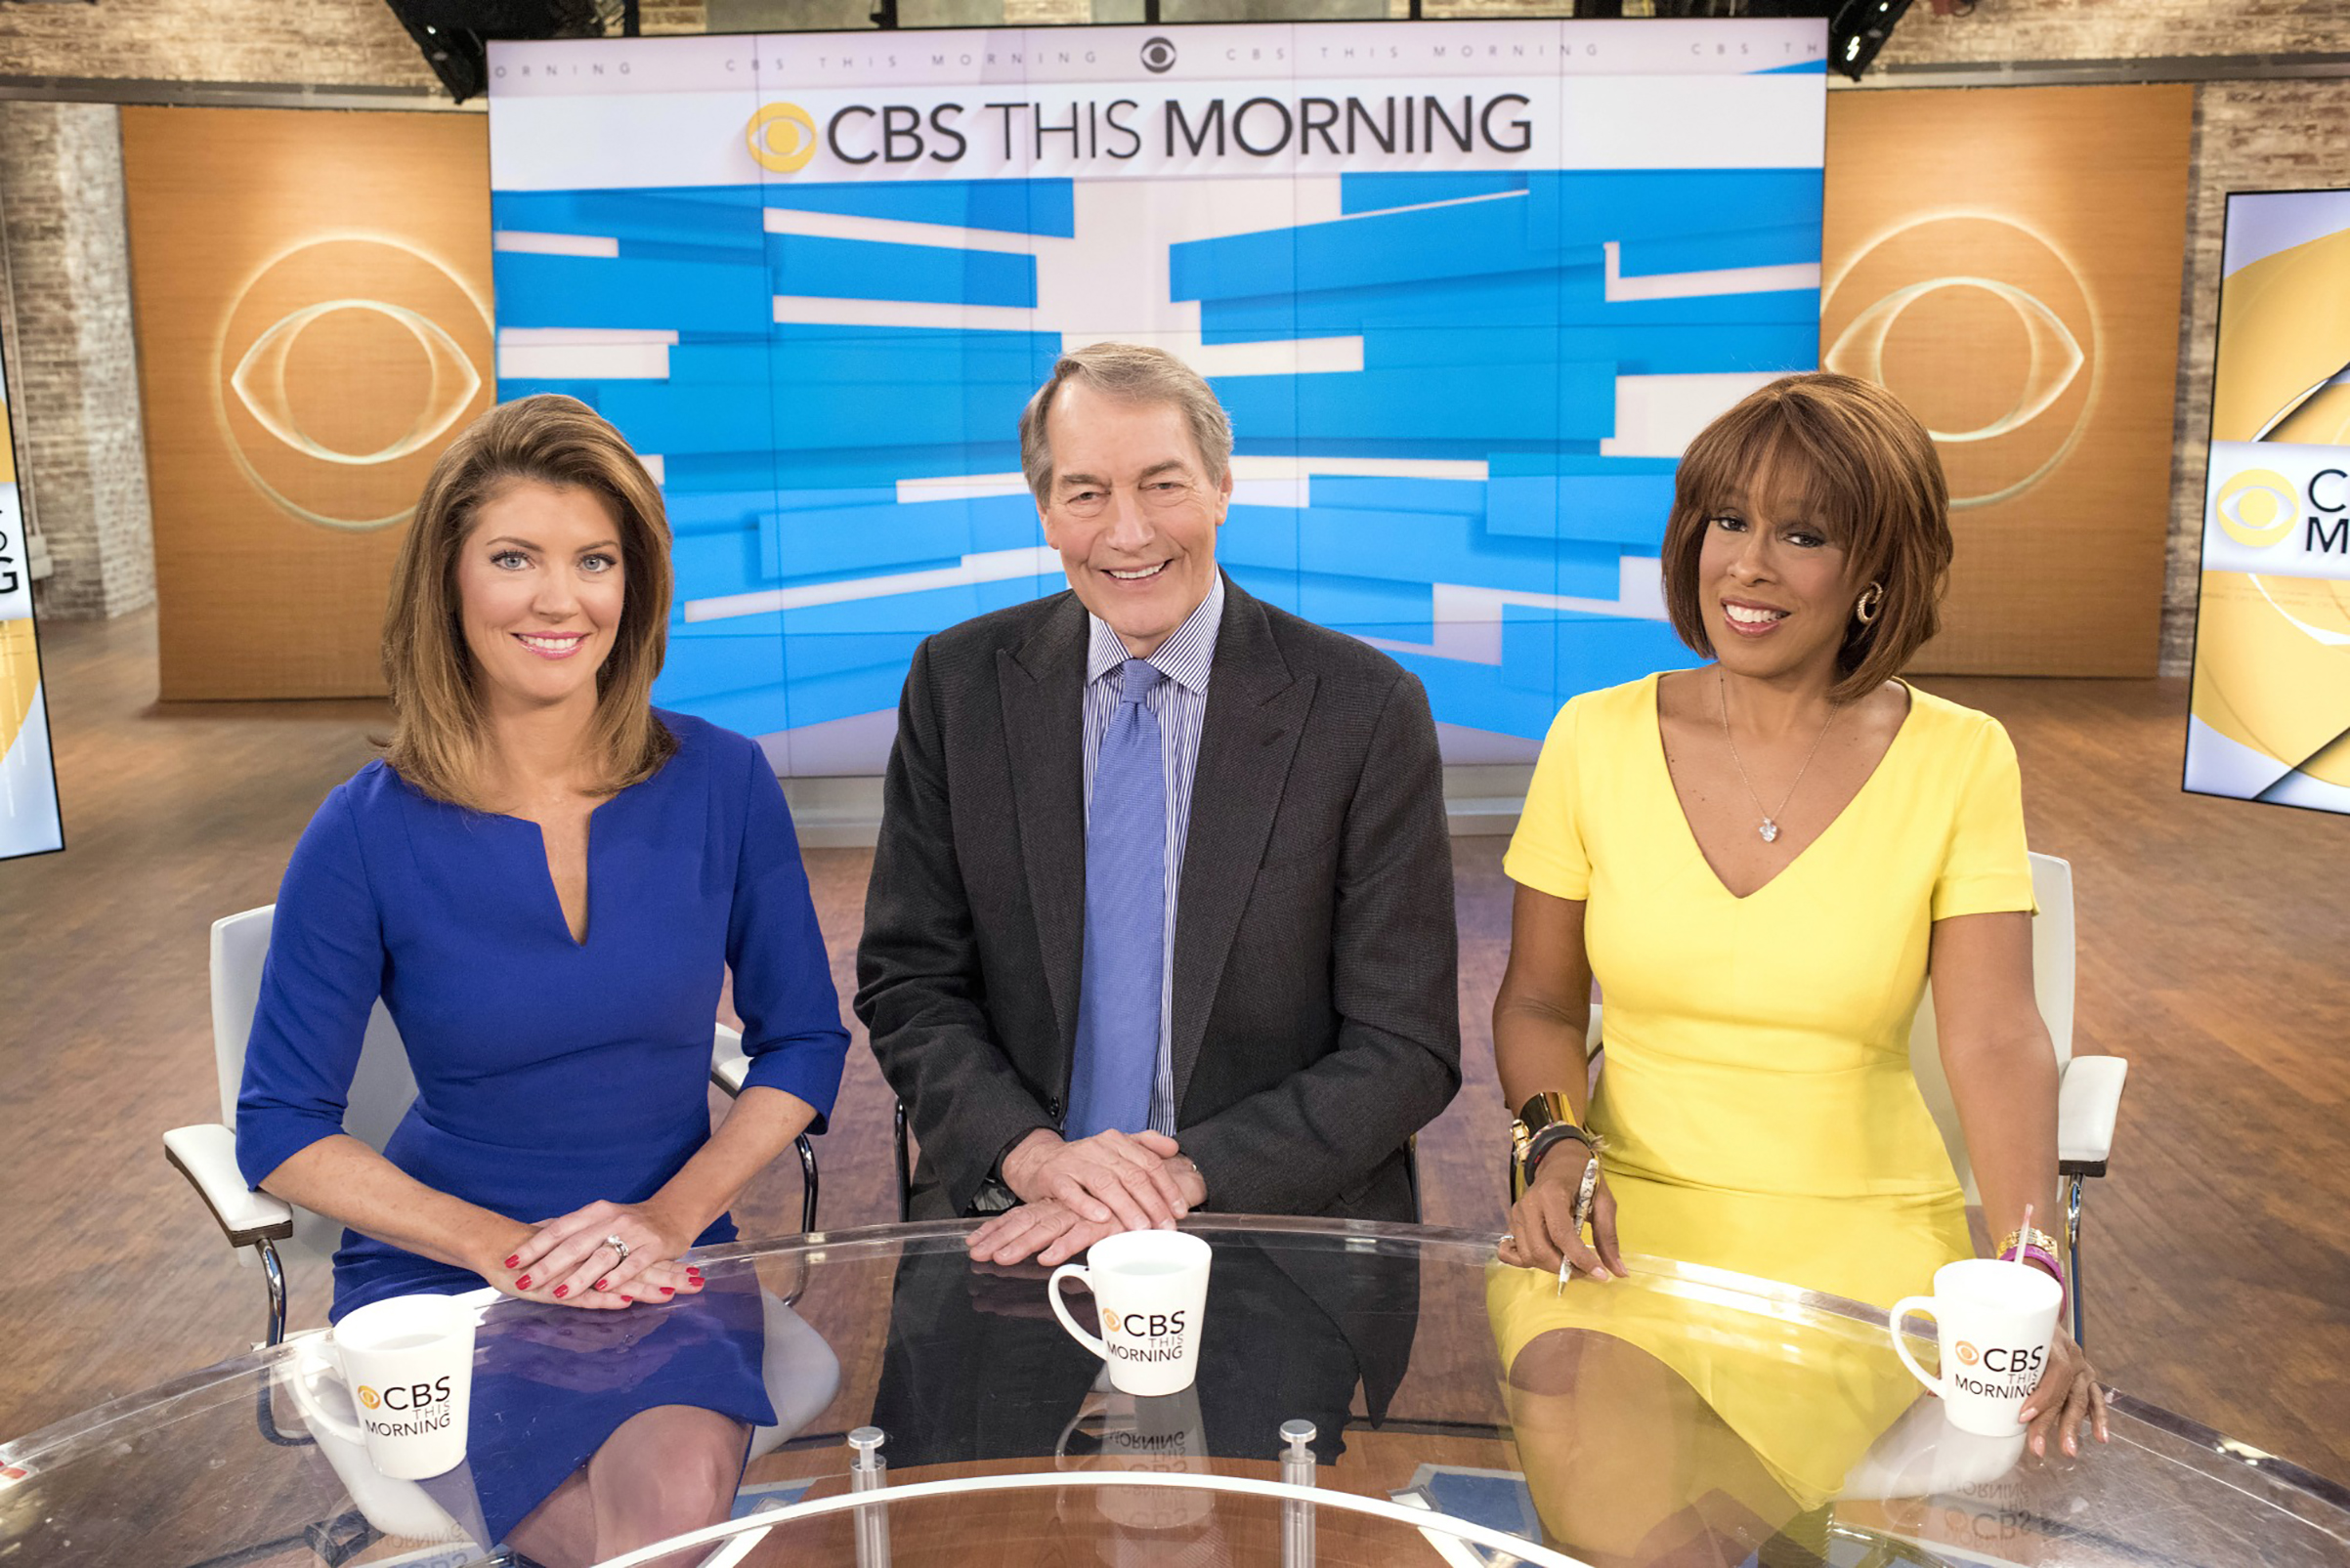 King with morning co-hosts Norah O'Donnell and Charlie Rose at CBS in 2016